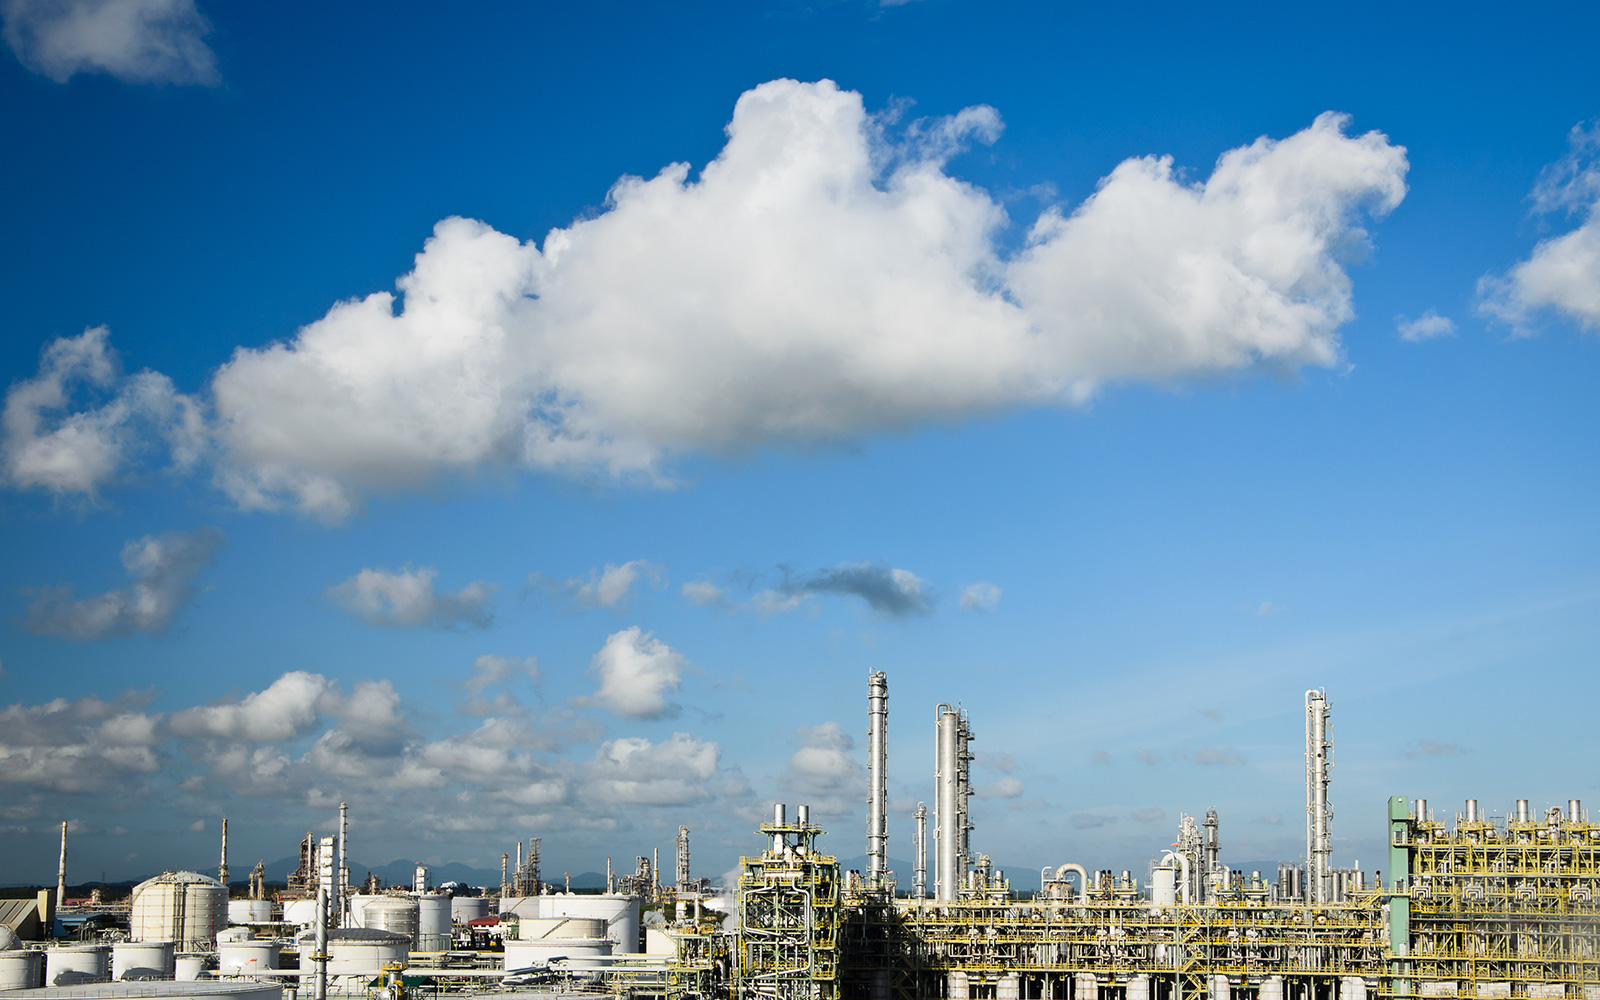 Petrochemical plant below a blue sky with clouds